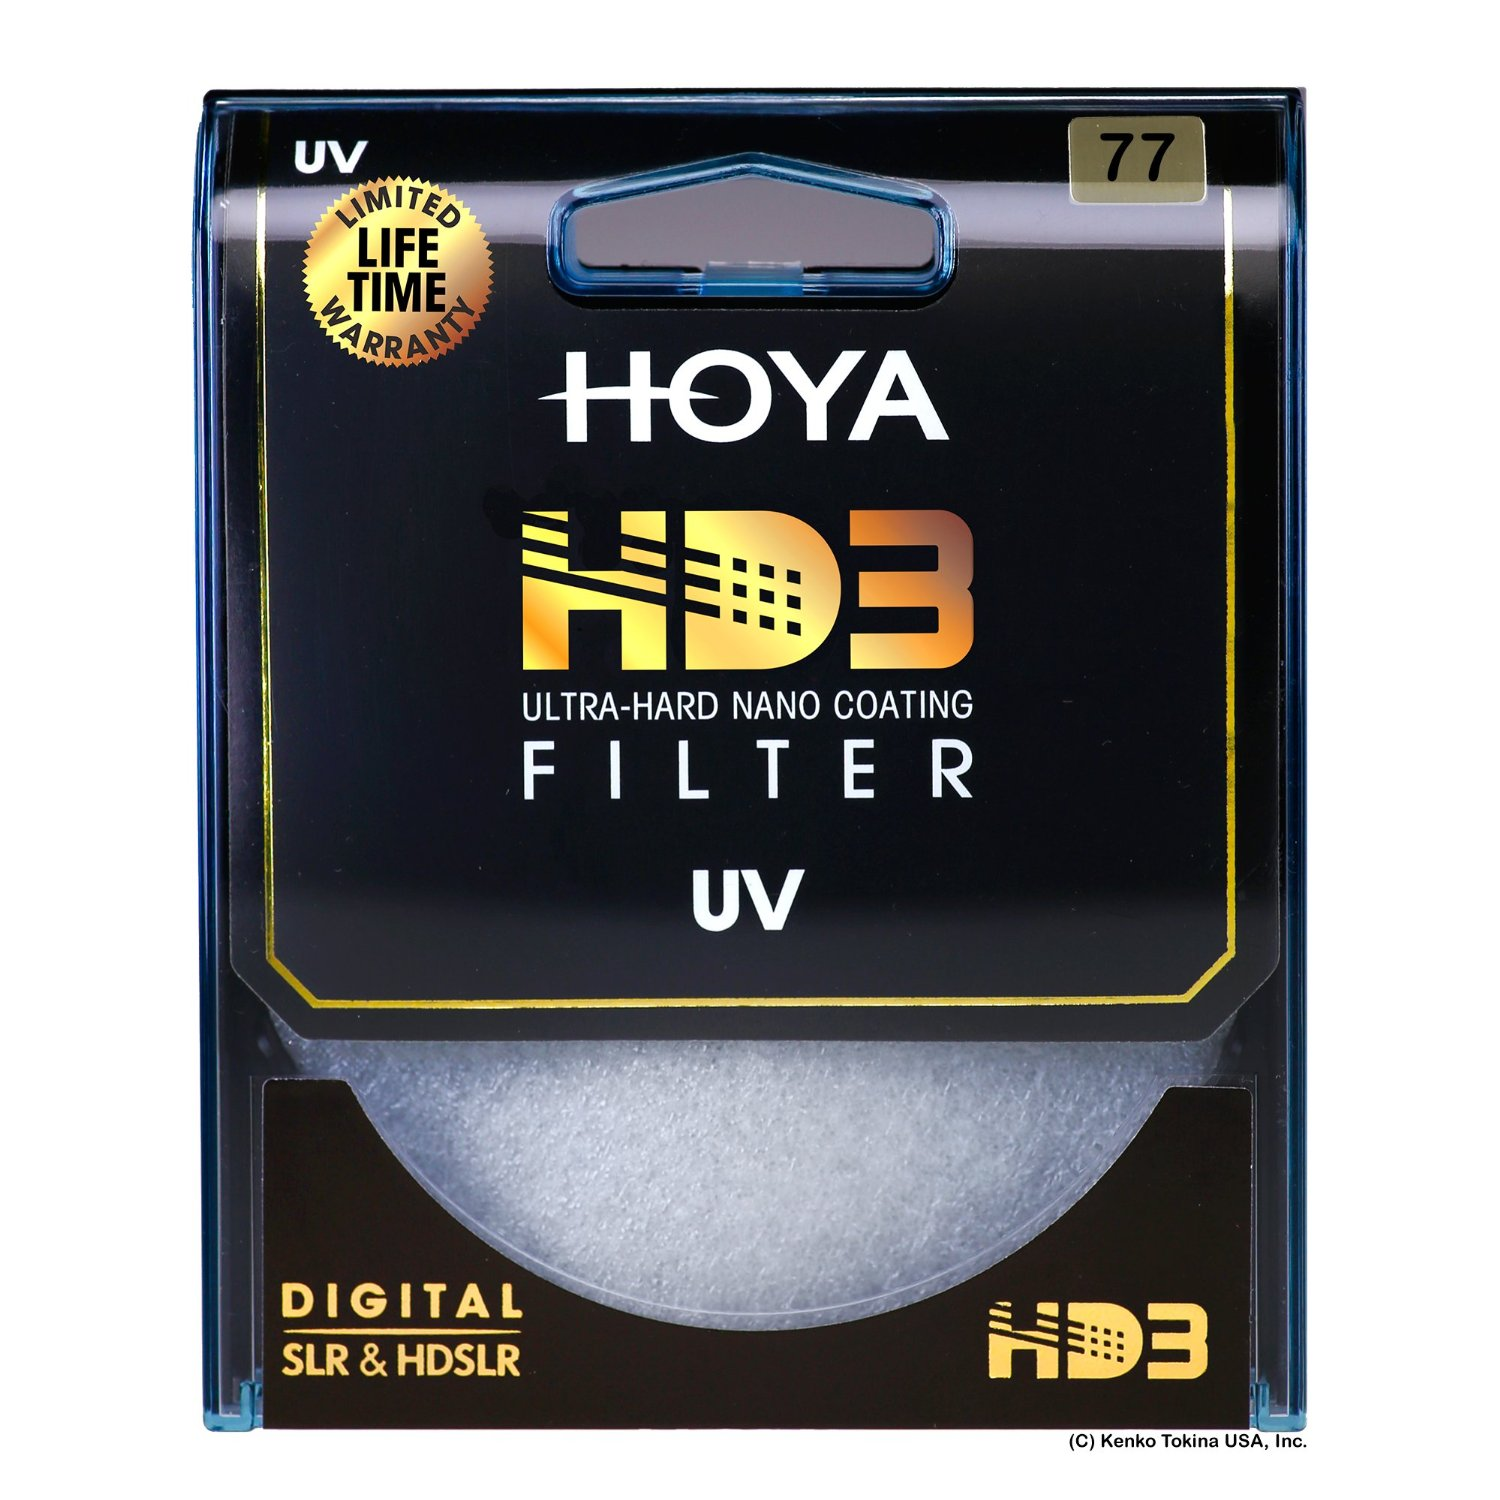 The new Hoya HD3 series UV filter. This or the HD2 version are the ones I use on all my lenses.